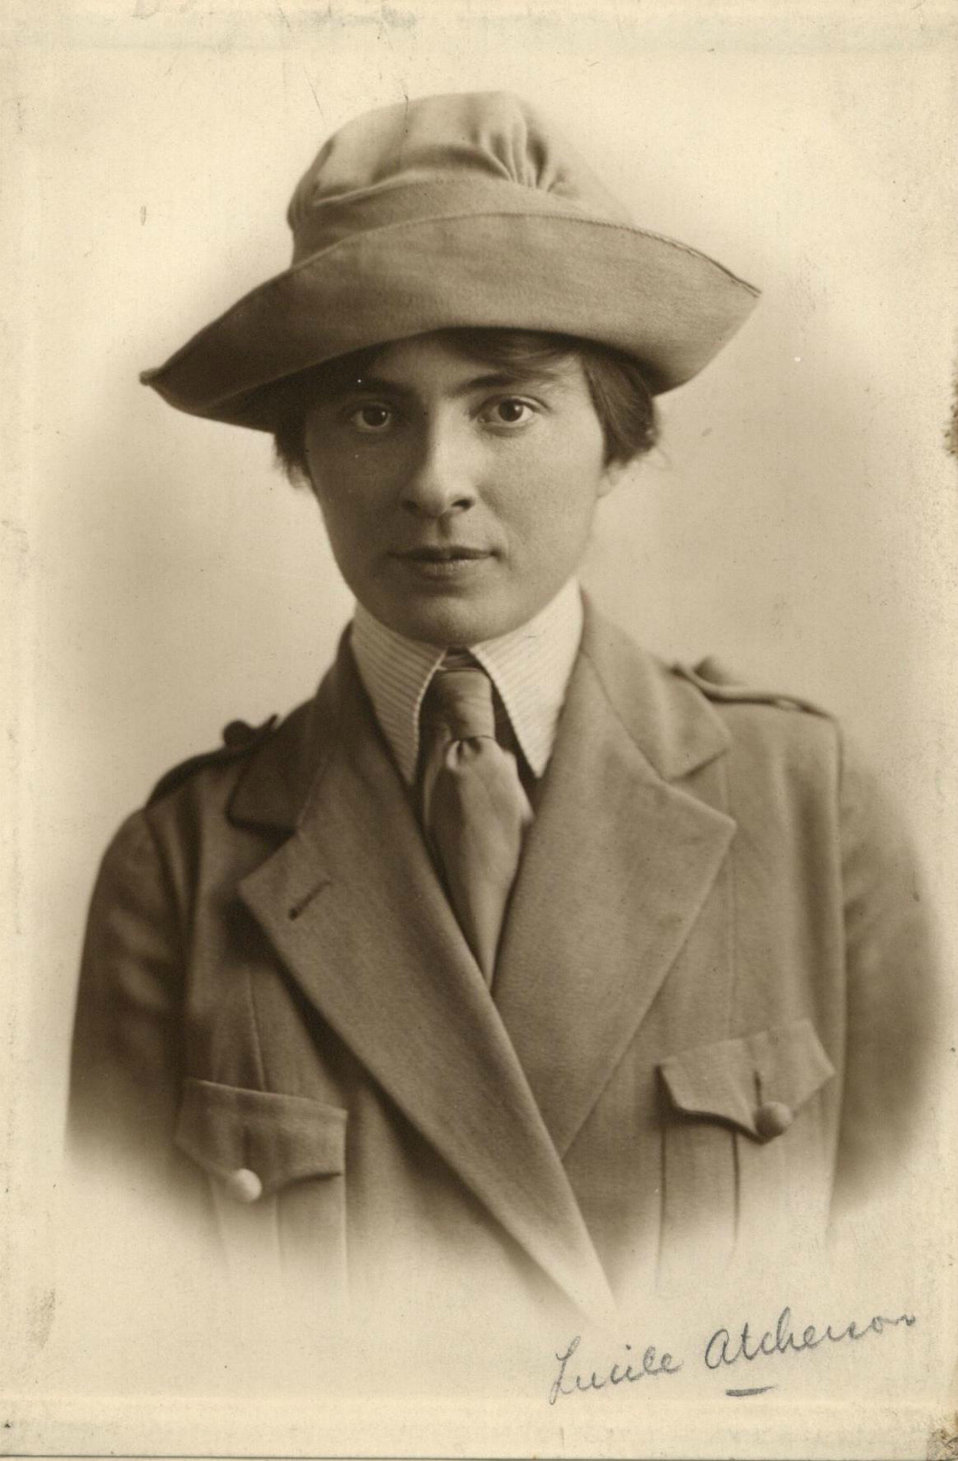 First Female American Foreign Service Officer -- Lucile Atcherson Curtis – in 1922